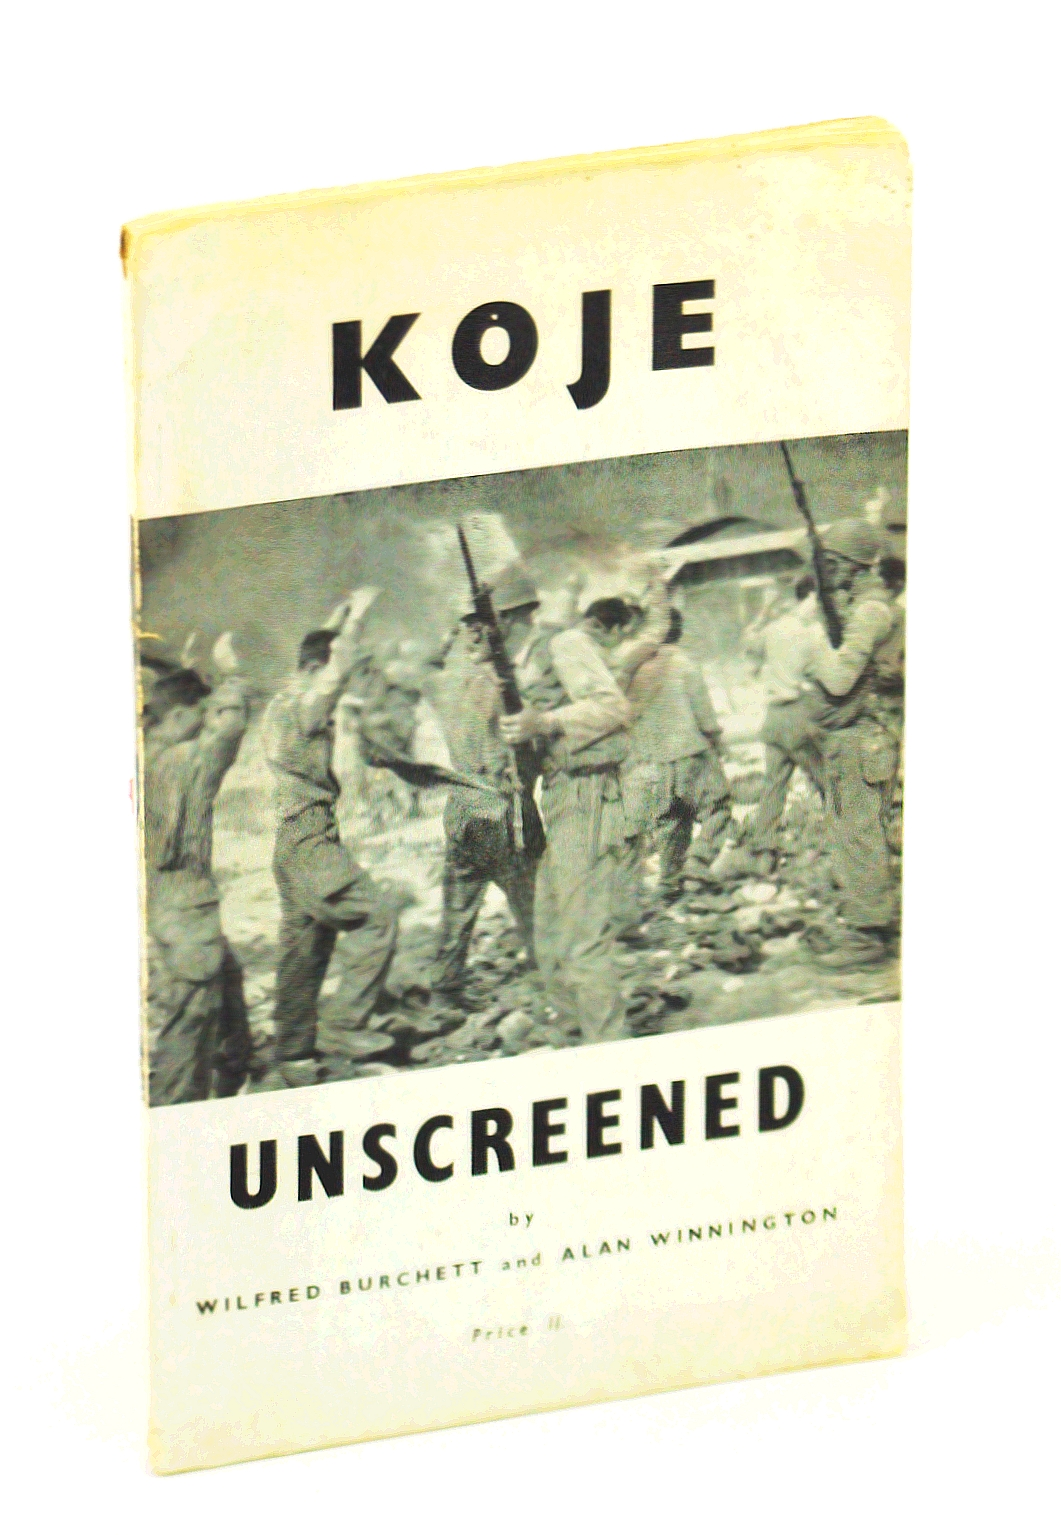 Image for Koje unscreened,